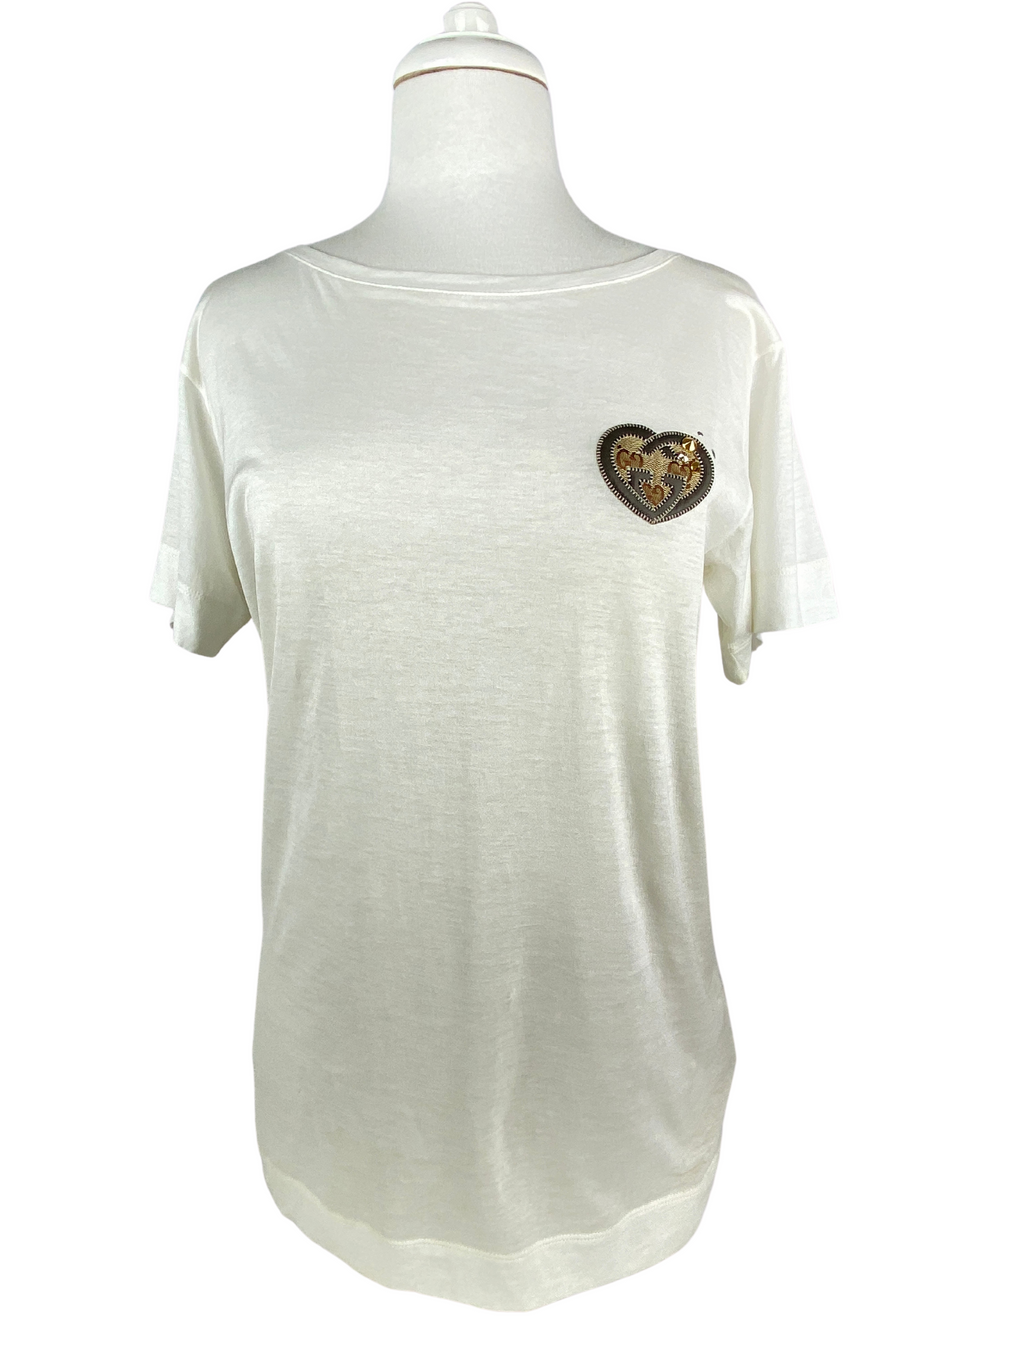 GUCCI - GG HEART APPLIQUE COTTON T-SHIRT - SZ MED